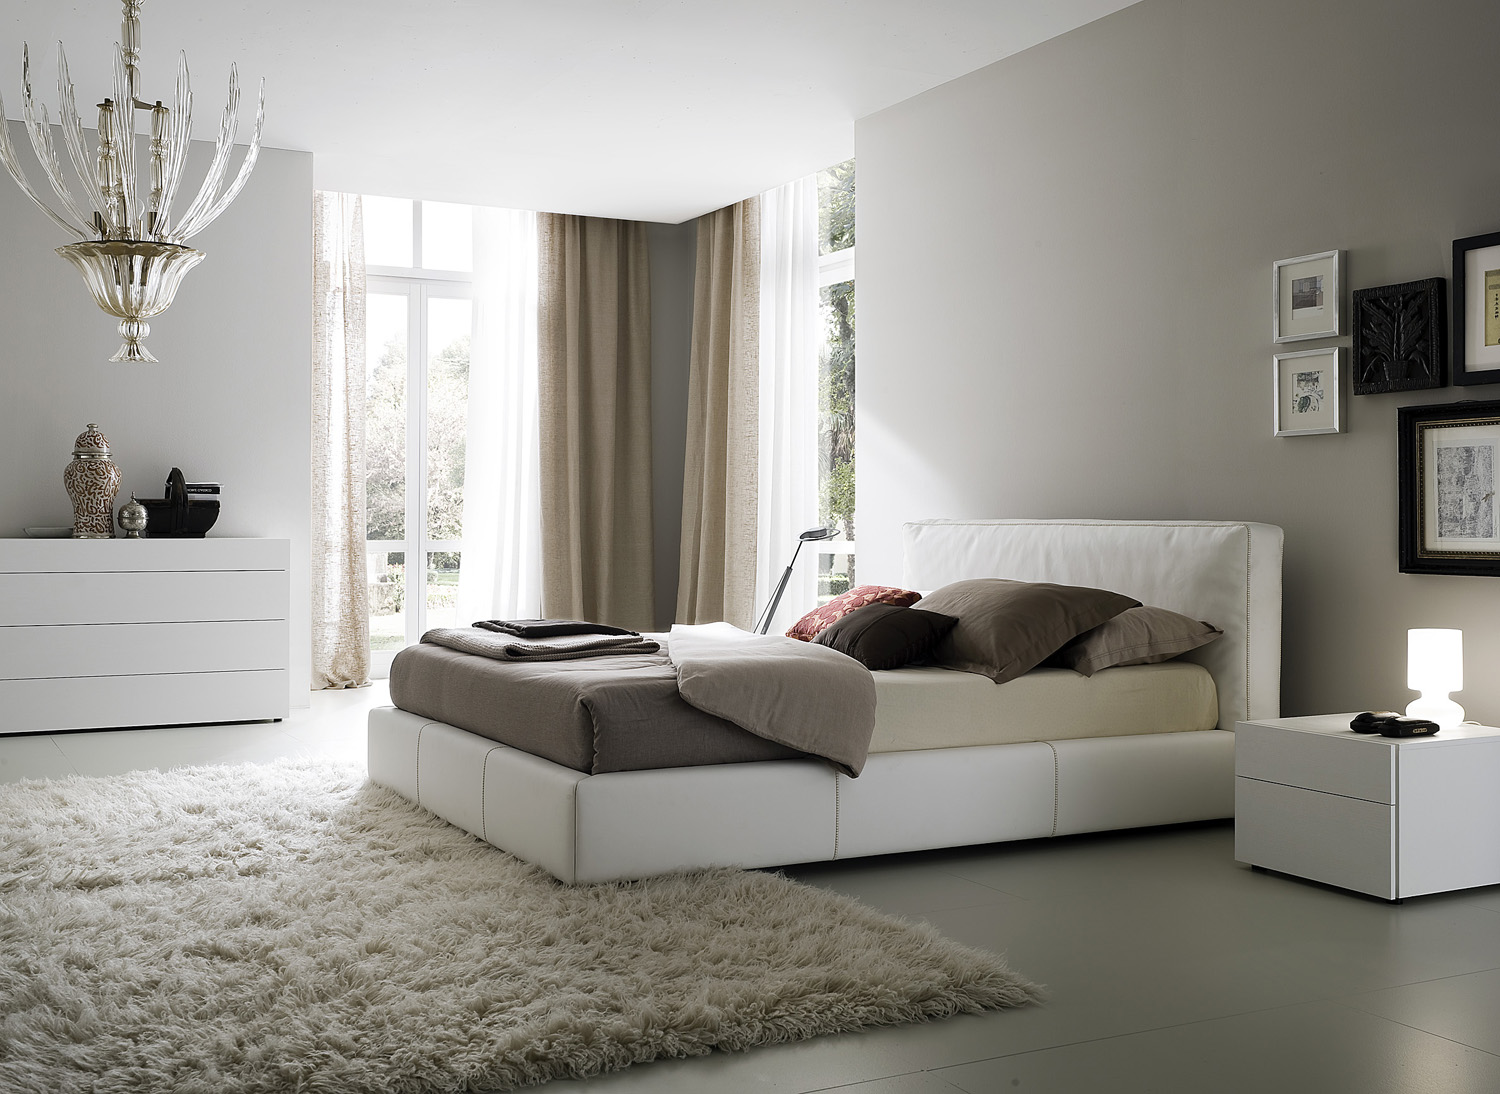 Bedroom decorating ideas from evinco for Easy bedroom ideas